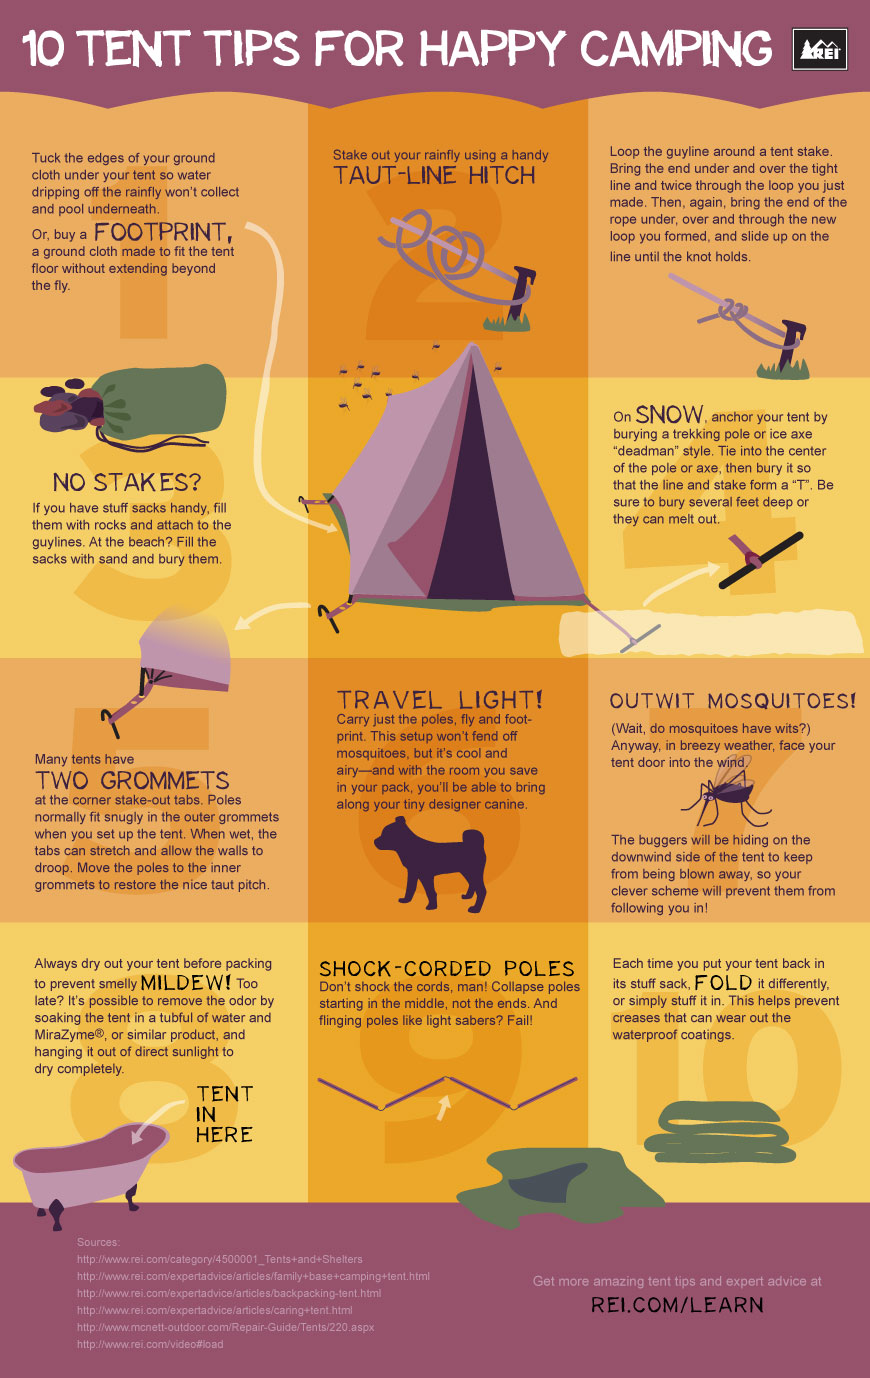 Tips for happy camping